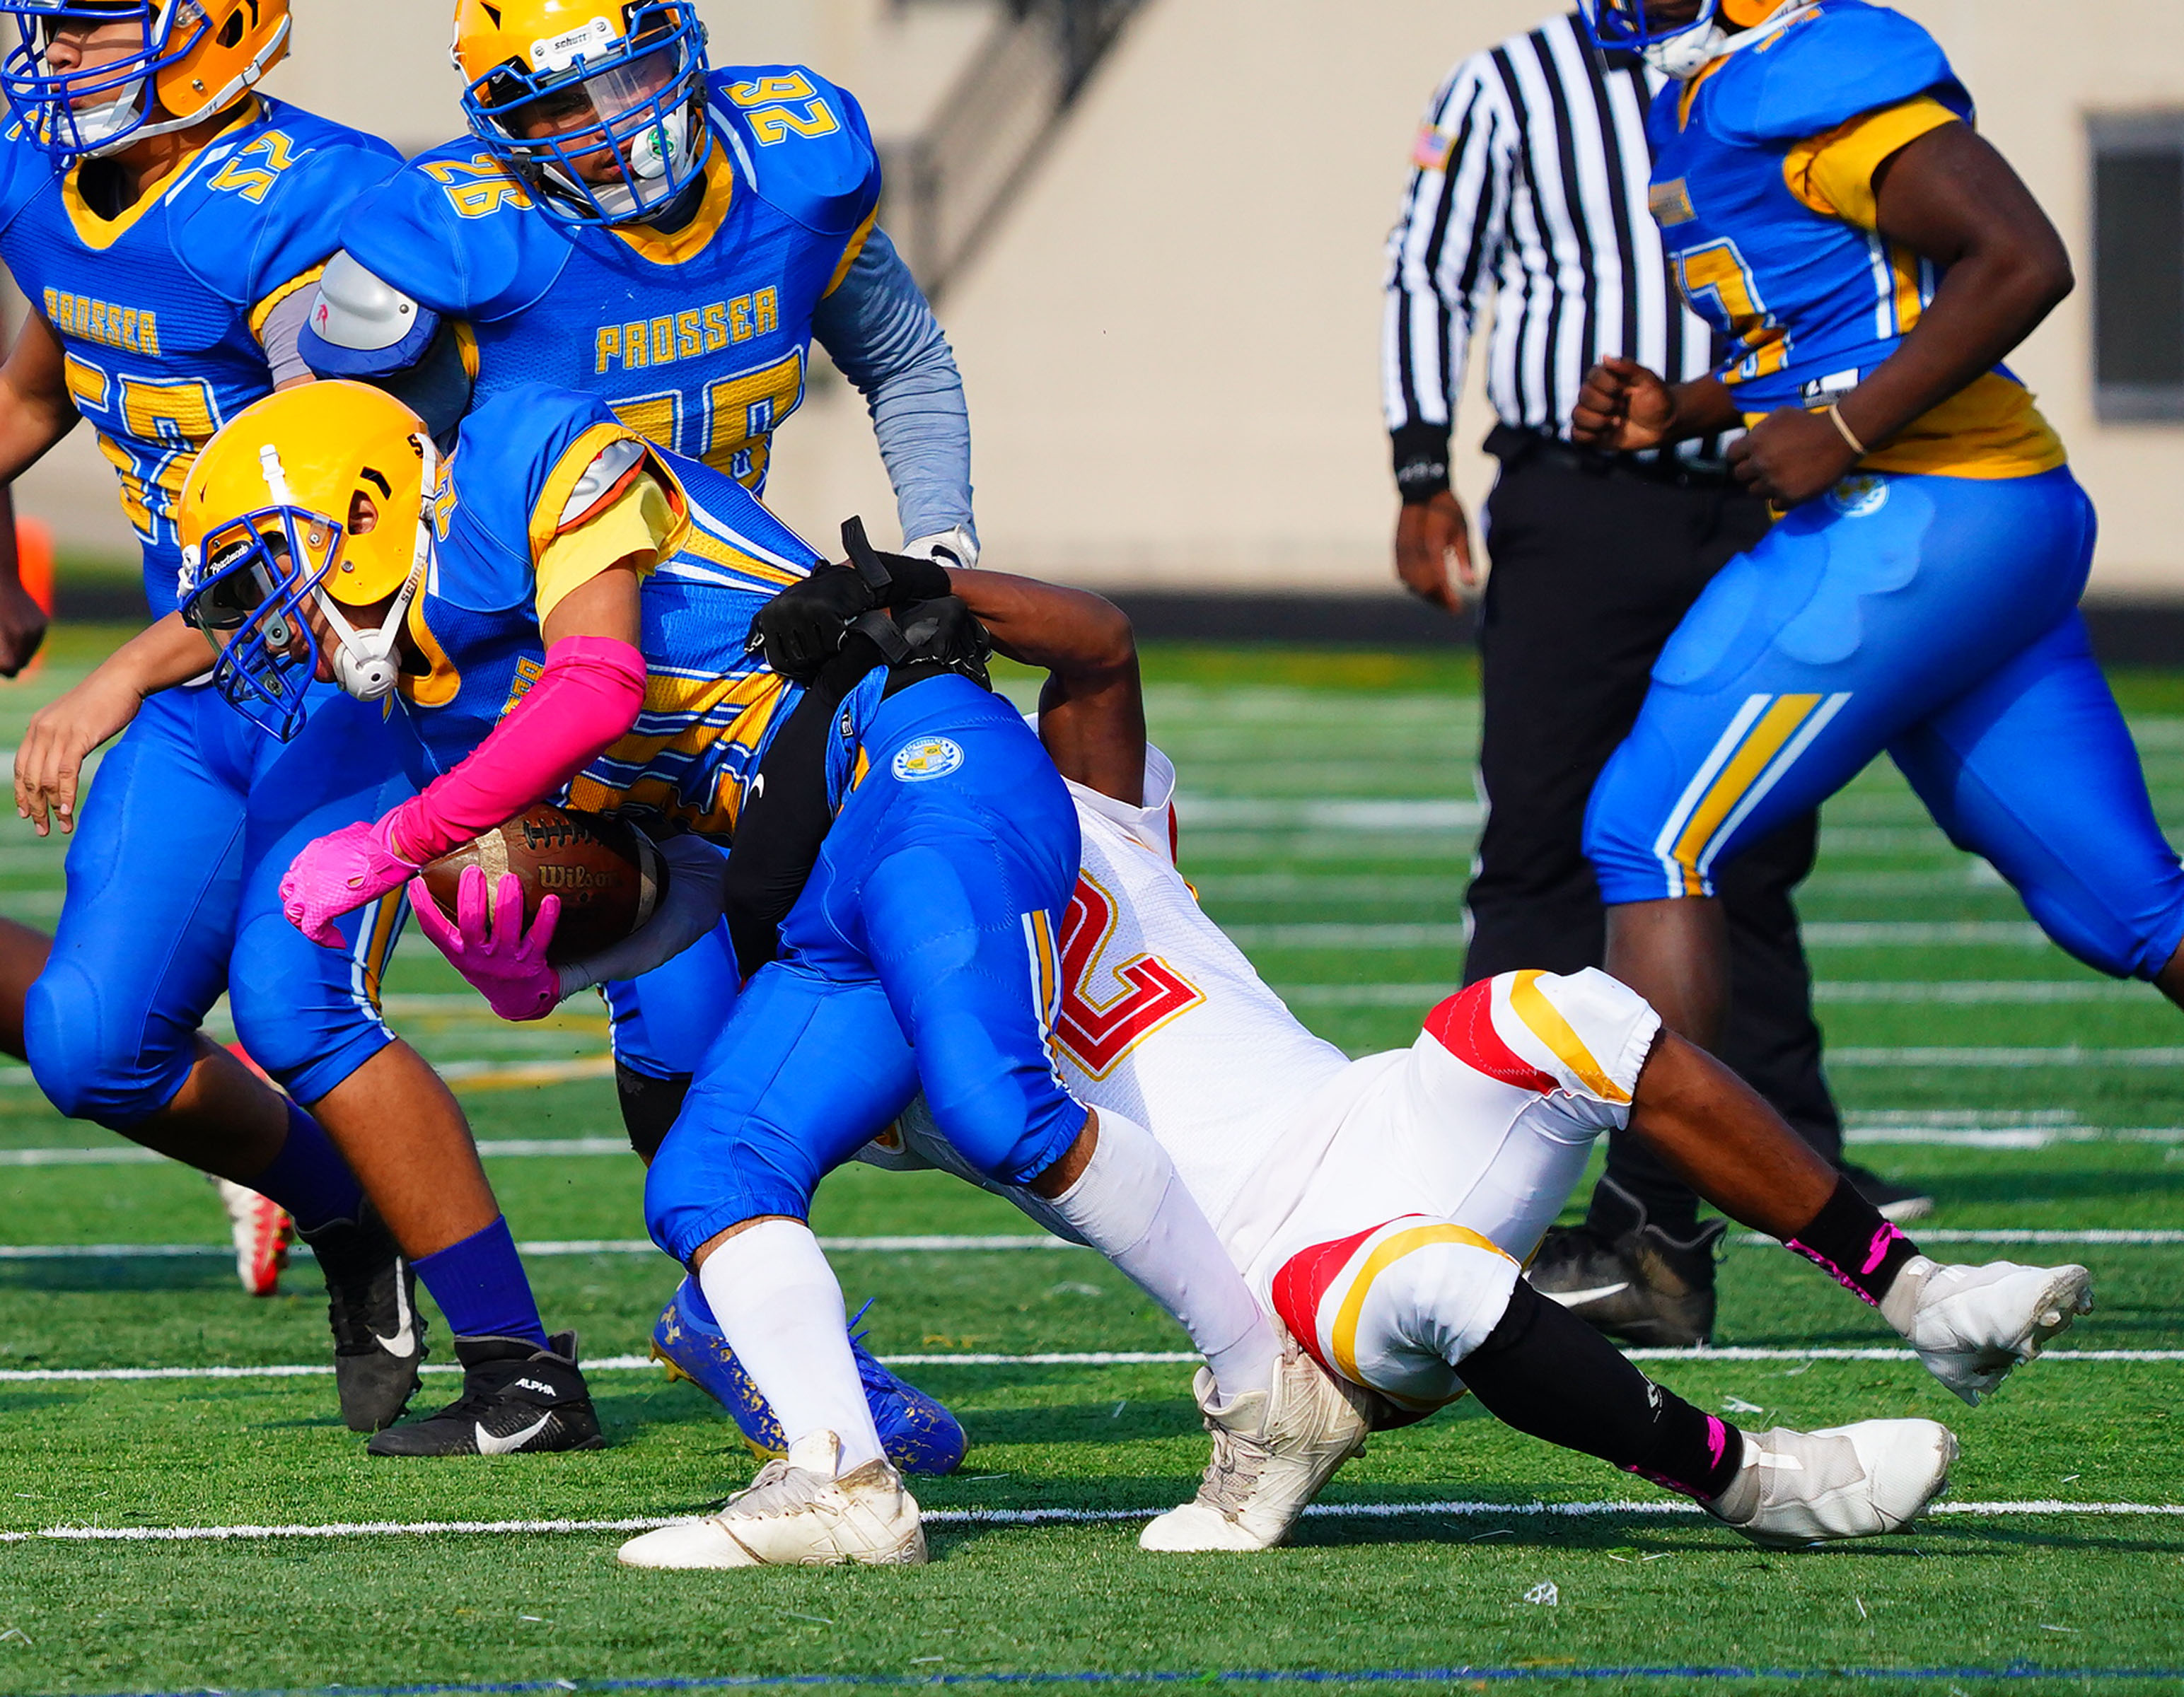 North Lawndale's Cortez Roach (2) tackles Prosser's Tyler Valladares (20) for a loss.